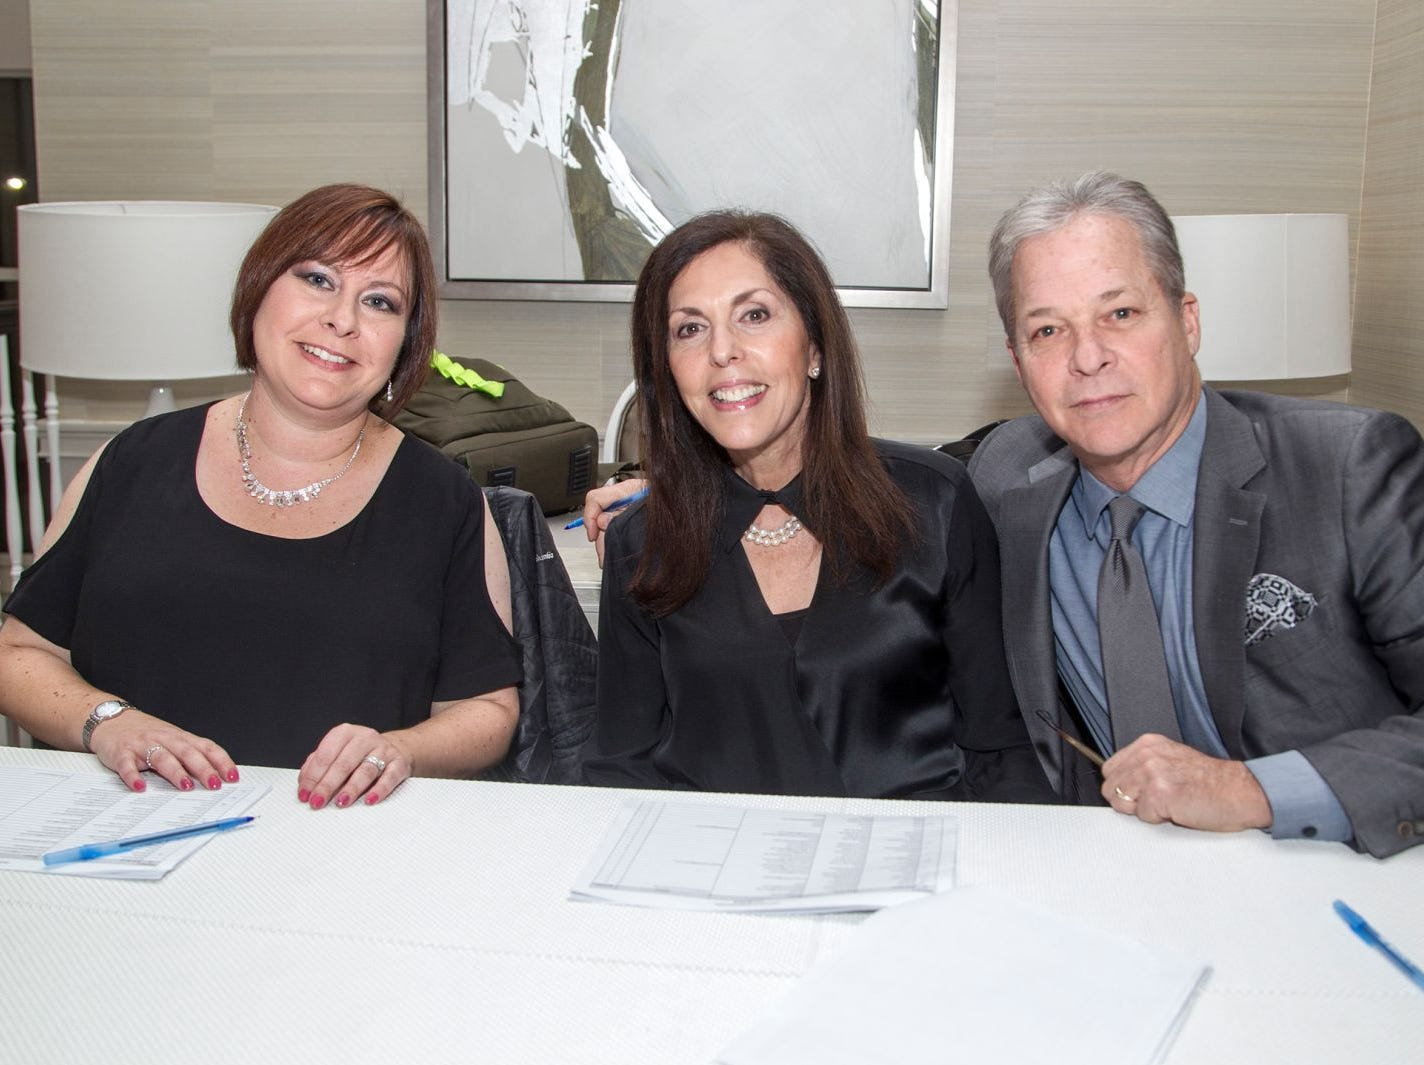 Jessica, Allison, Robert. Jewish Family & Children's Services of Northern New Jersey held its annual gala at the Edgewood Country Club in River Vale. The evening honored Shira Feuerstein, Jayne Petak, and Alan Scharfstein for their leadership, support, and dedication. 11/18/2018